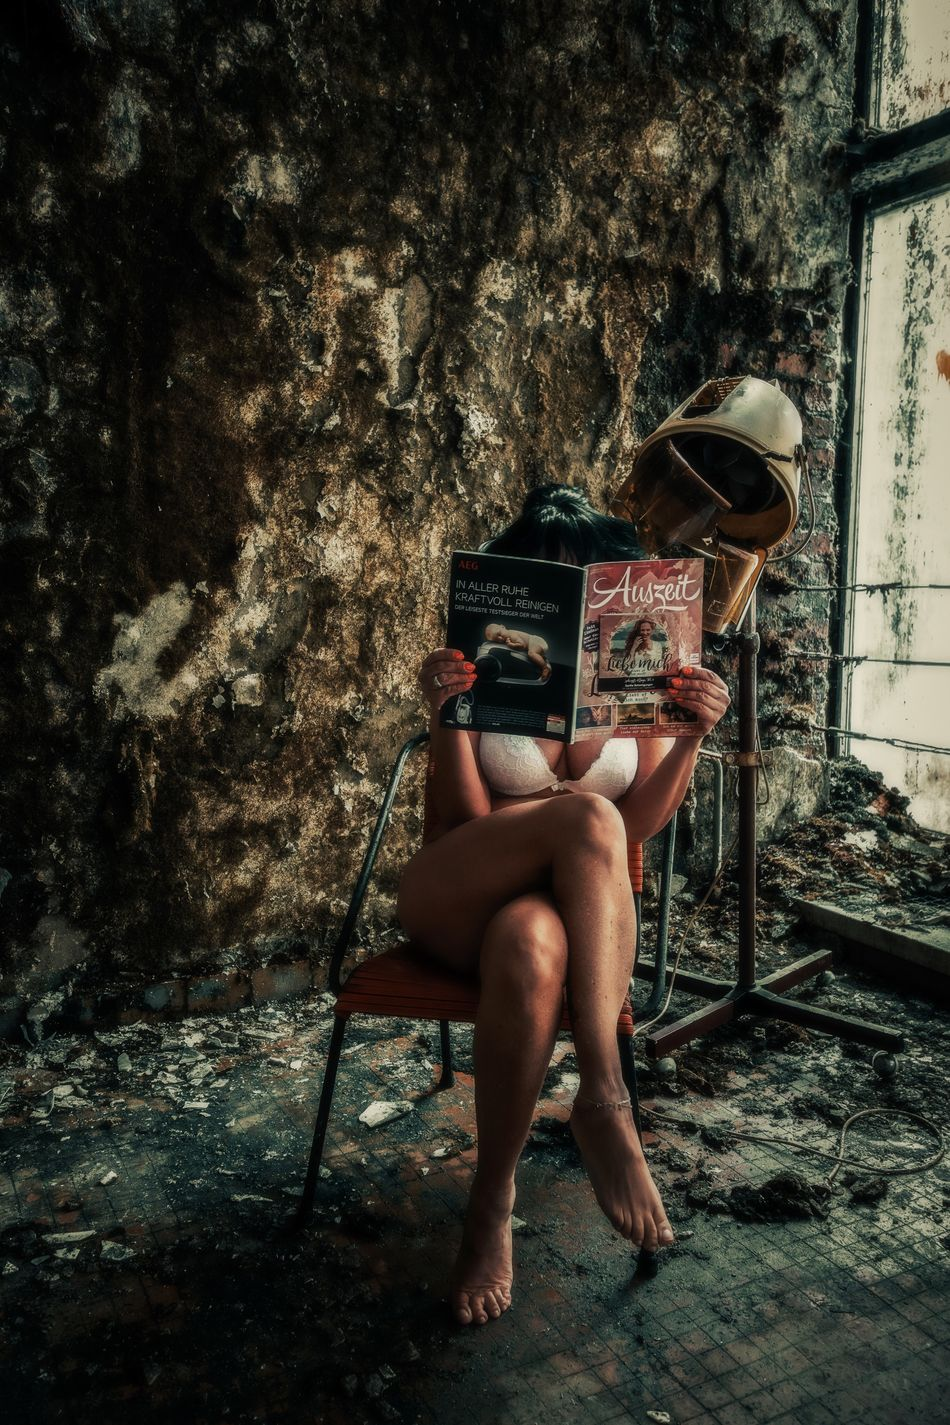 Beautytime Abandoned Urbexphotography Abandoned Places Woman Portrait Women Portraits Beautiful Woman PortraitPhotography Beauty Of Decay Portrait Women Of EyeEm Portrait Of A Woman Fine Art Photography Self Portrait Chair Sitting Lifestyles Faces Of EyeEm EyeEm Gallery Beauty